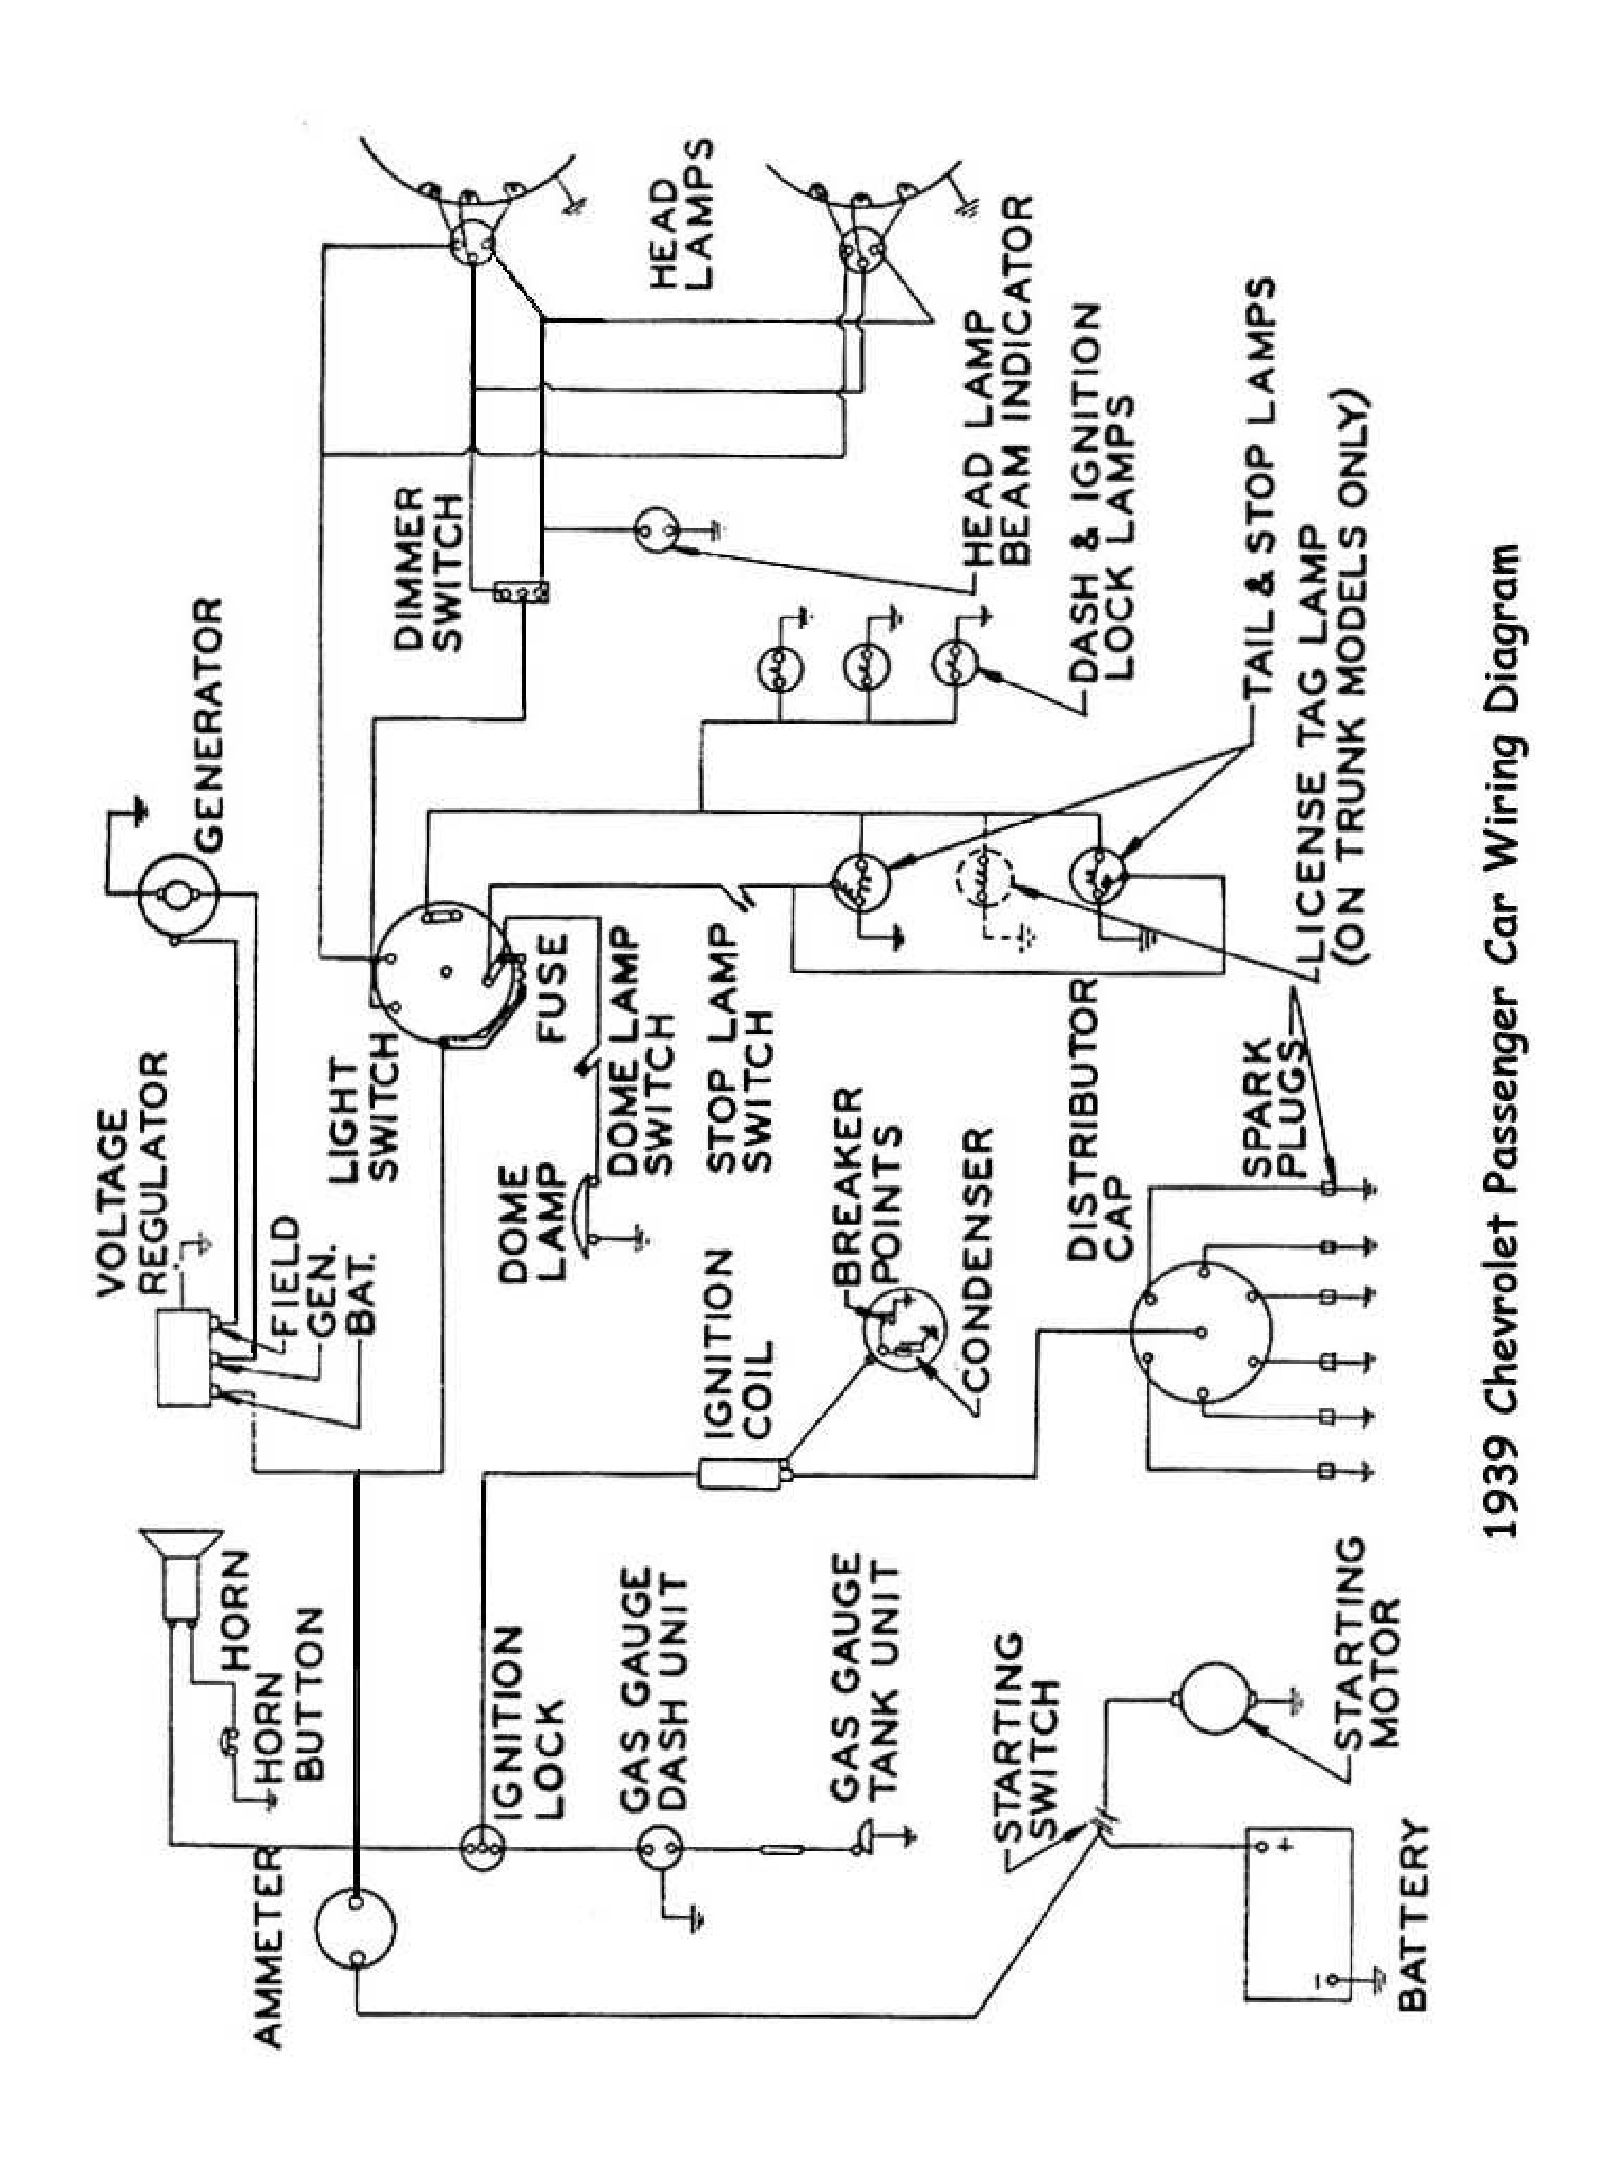 1940 oldsmobile wiring schematic manual e books 1956 Chevrolet 3100 Pick Up 1951 oldsmobile wiring diagram free picture schematic creative51 oldsmobile wiring diagram wiring diagram database rh 57